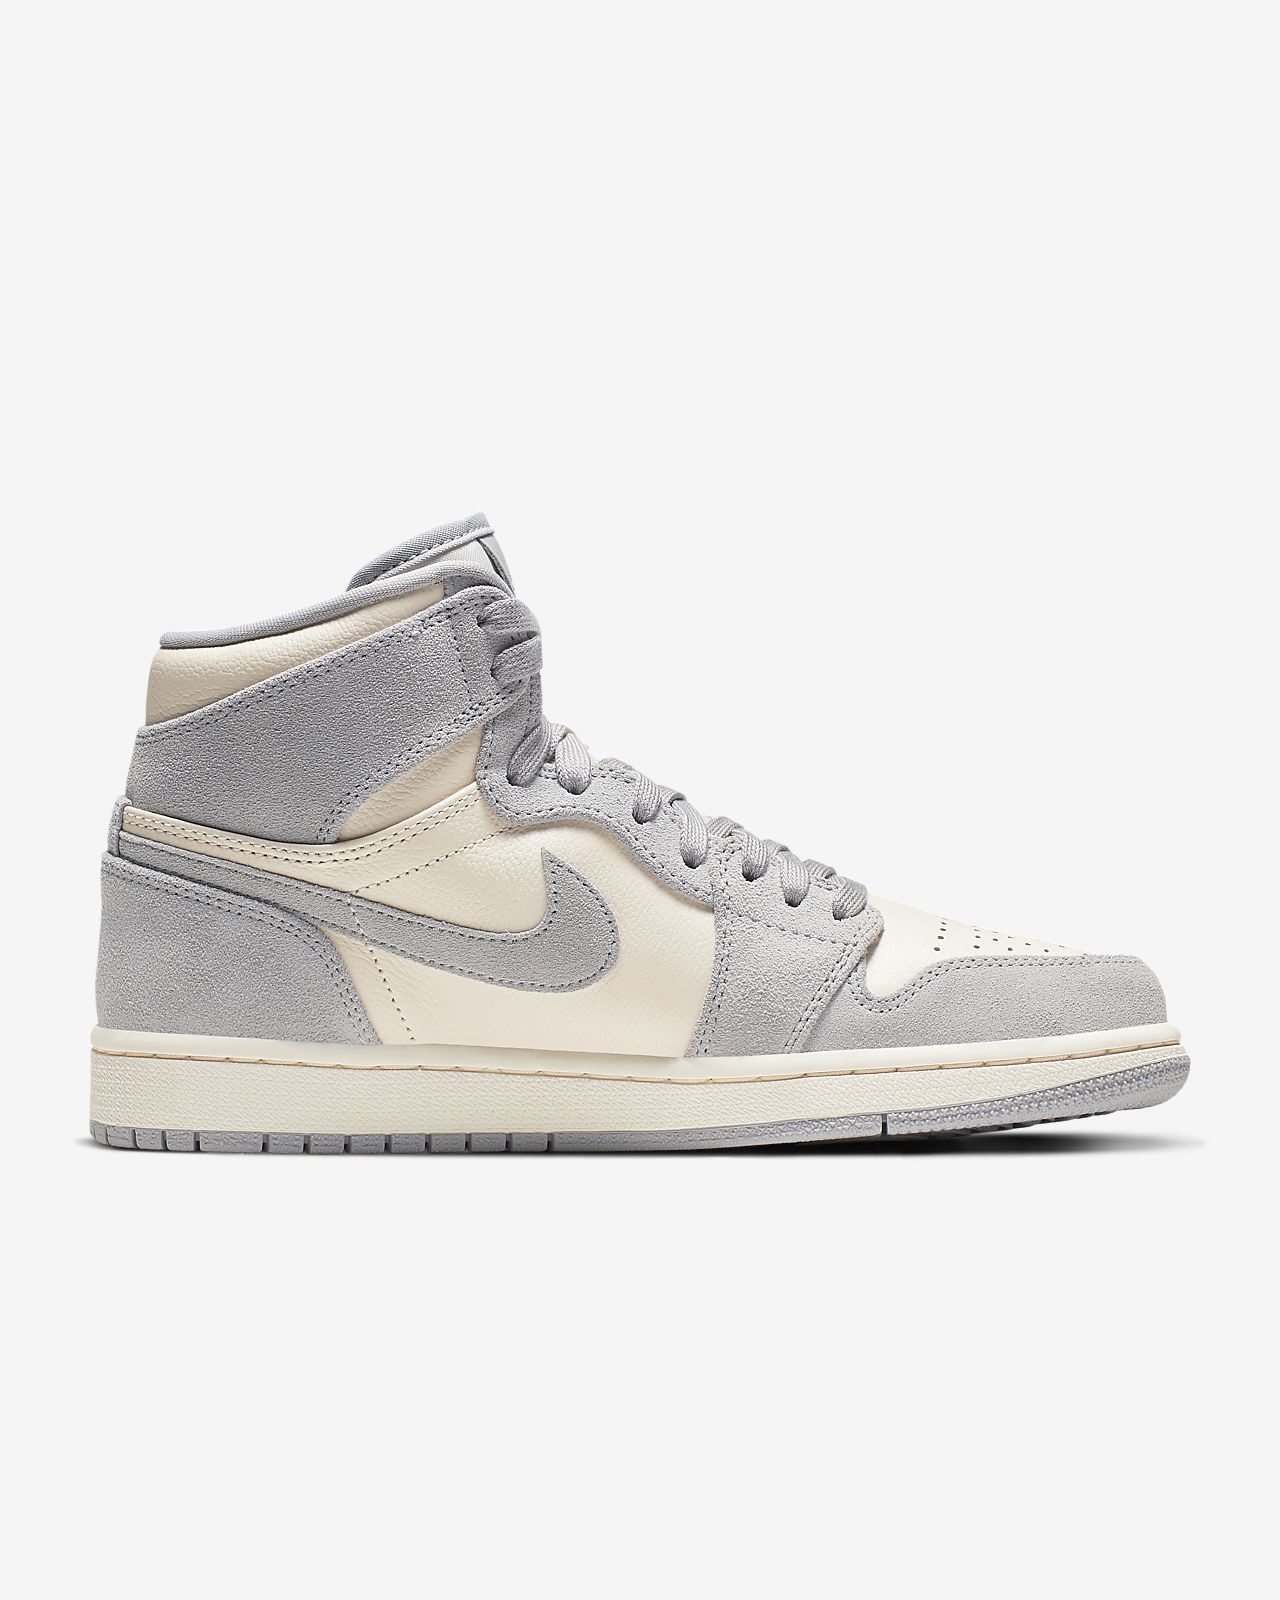 02e0ff6f35934b Nike Air Jordan 1 Retro High Premium Damenschuh. Nike.com AT